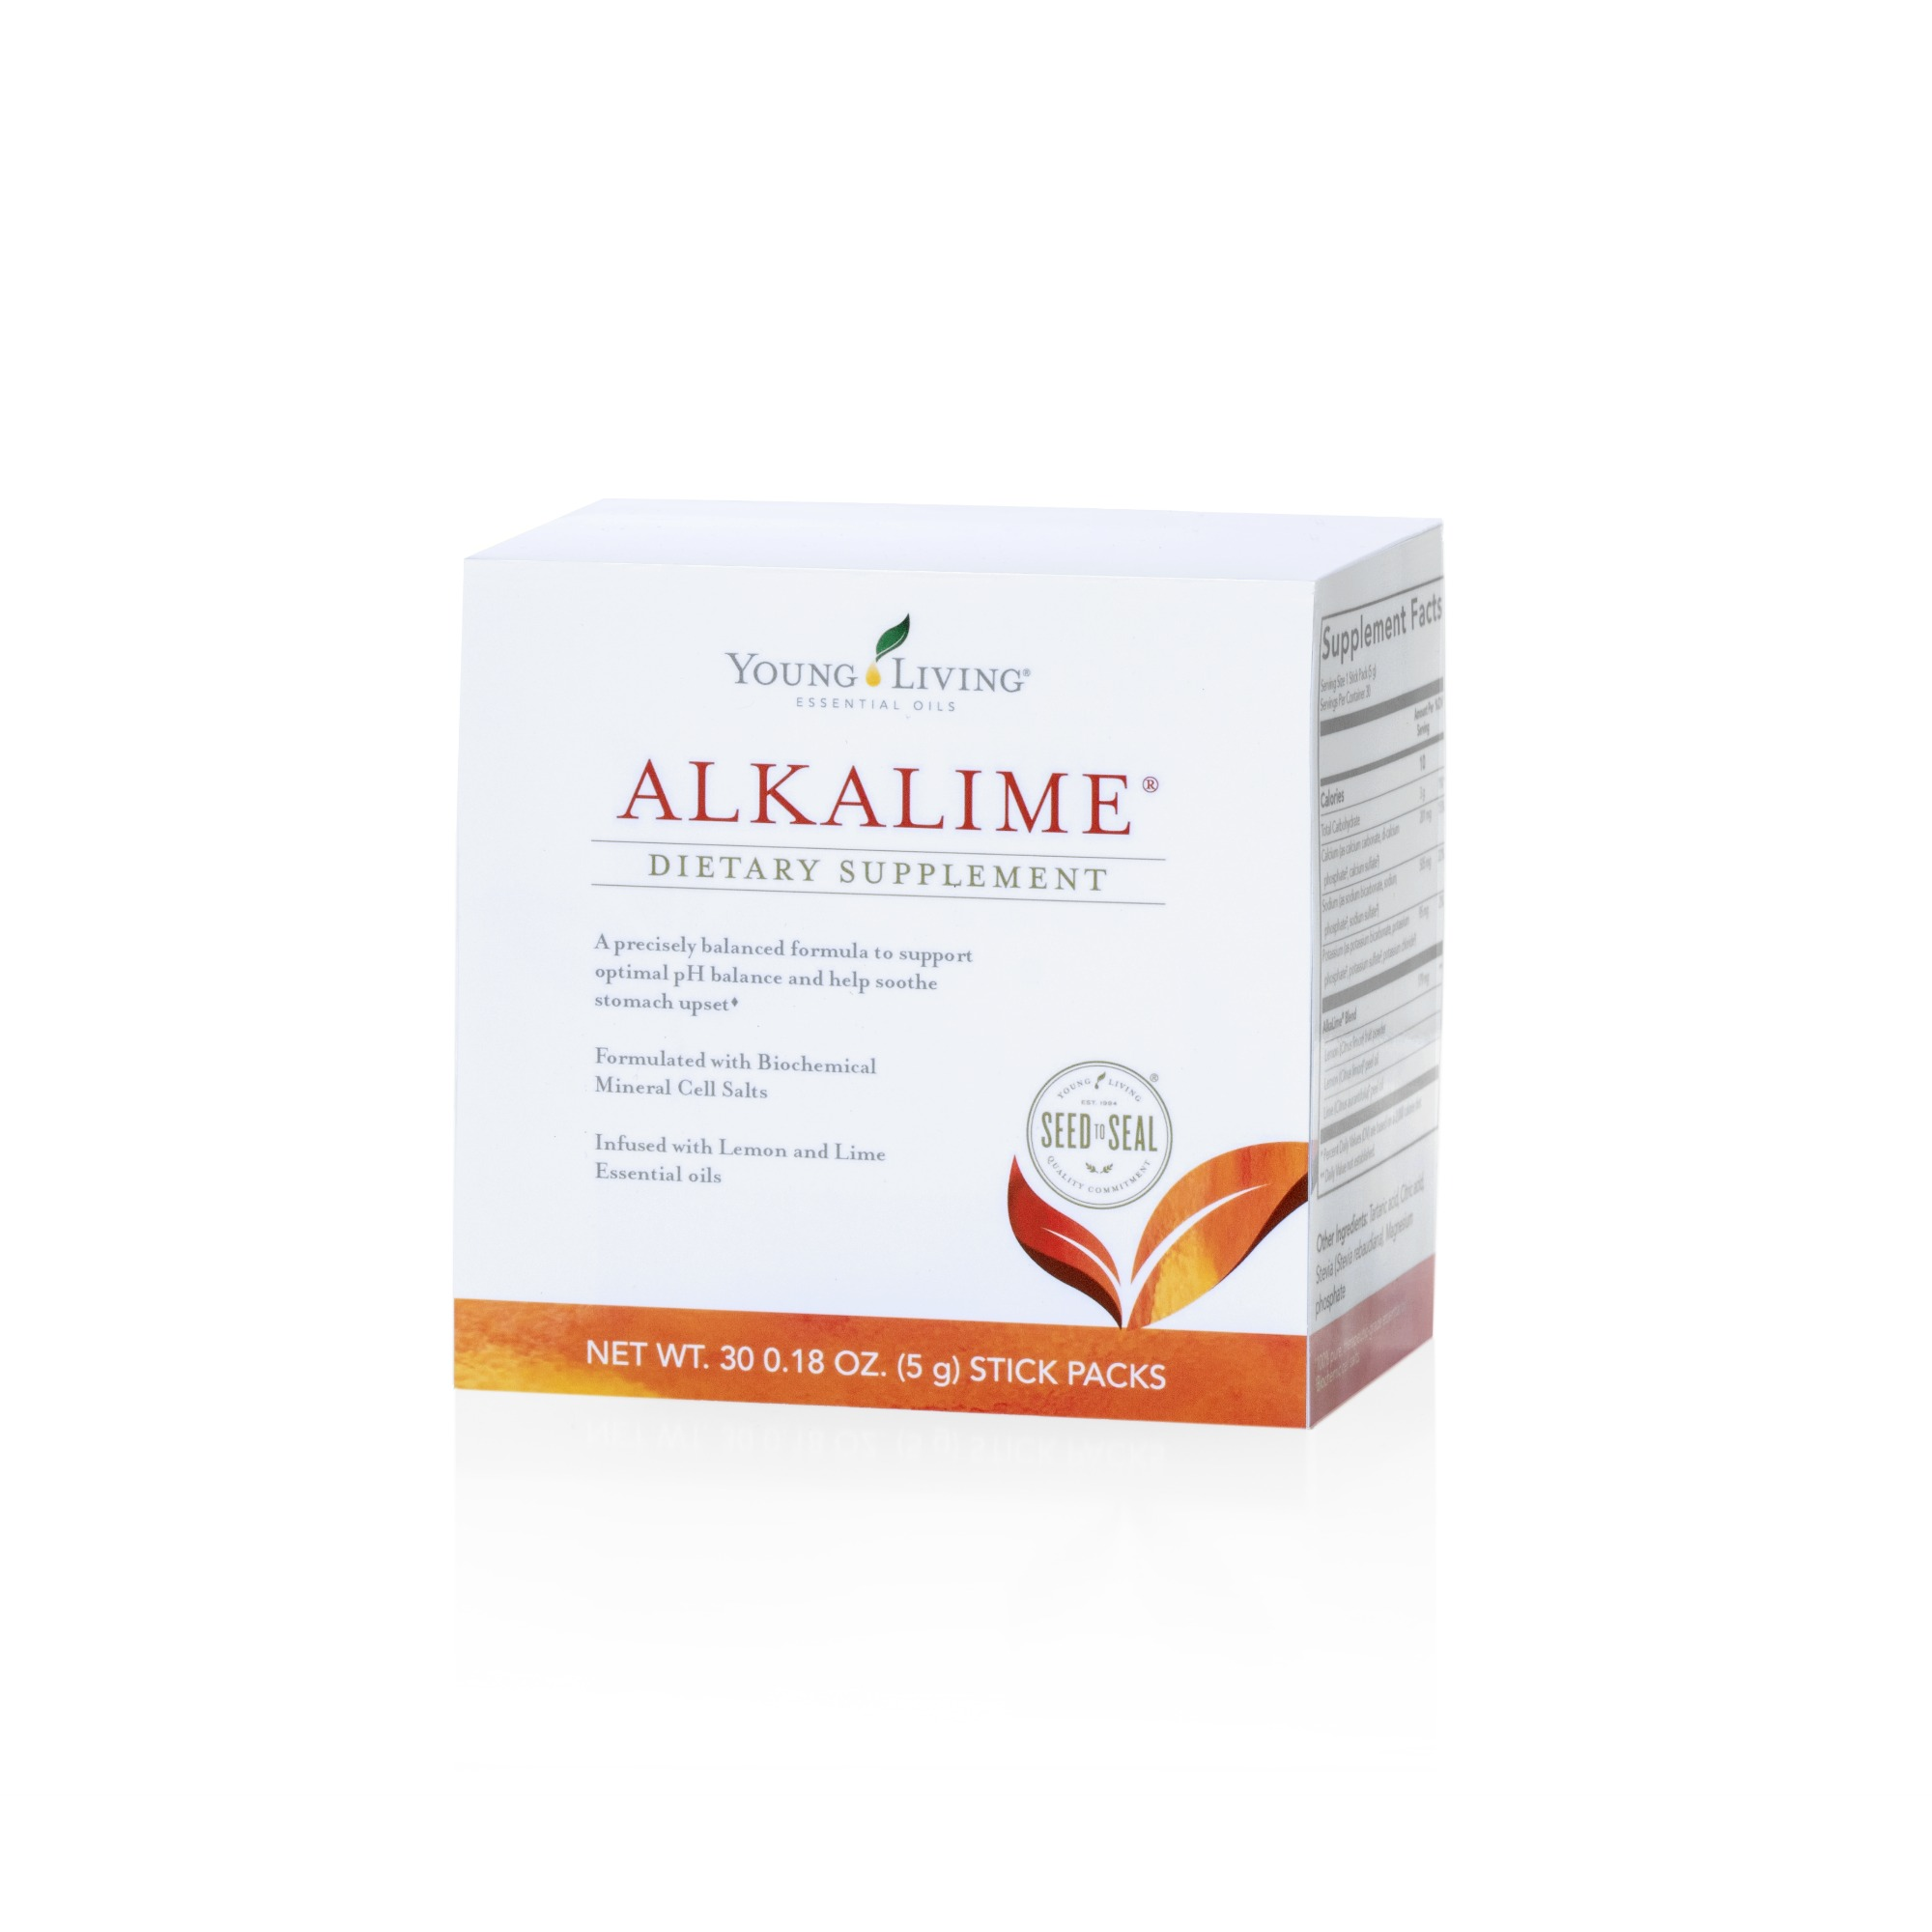 ALKALIME STICKS    AlkaLime now comes in convenient single-serve stick packs, so you can enjoy this mild, alkalinizing drink on the go. Keep a few in your purse, backpack, or at the office. The effervescing mix is formulated with Lemon and Lime essential oils, organic lemon powder, and biochemical mineral cell salts to create a crisp and soothing beverage that's gentle on stomachs and supportive for digestive and immune health. Simply empty a packet into 4–6 ounces of cool, pure water, then stir and enjoy. Contains no artificial colors, flavors, or sweeteners.   Click here   to learn more about this product.